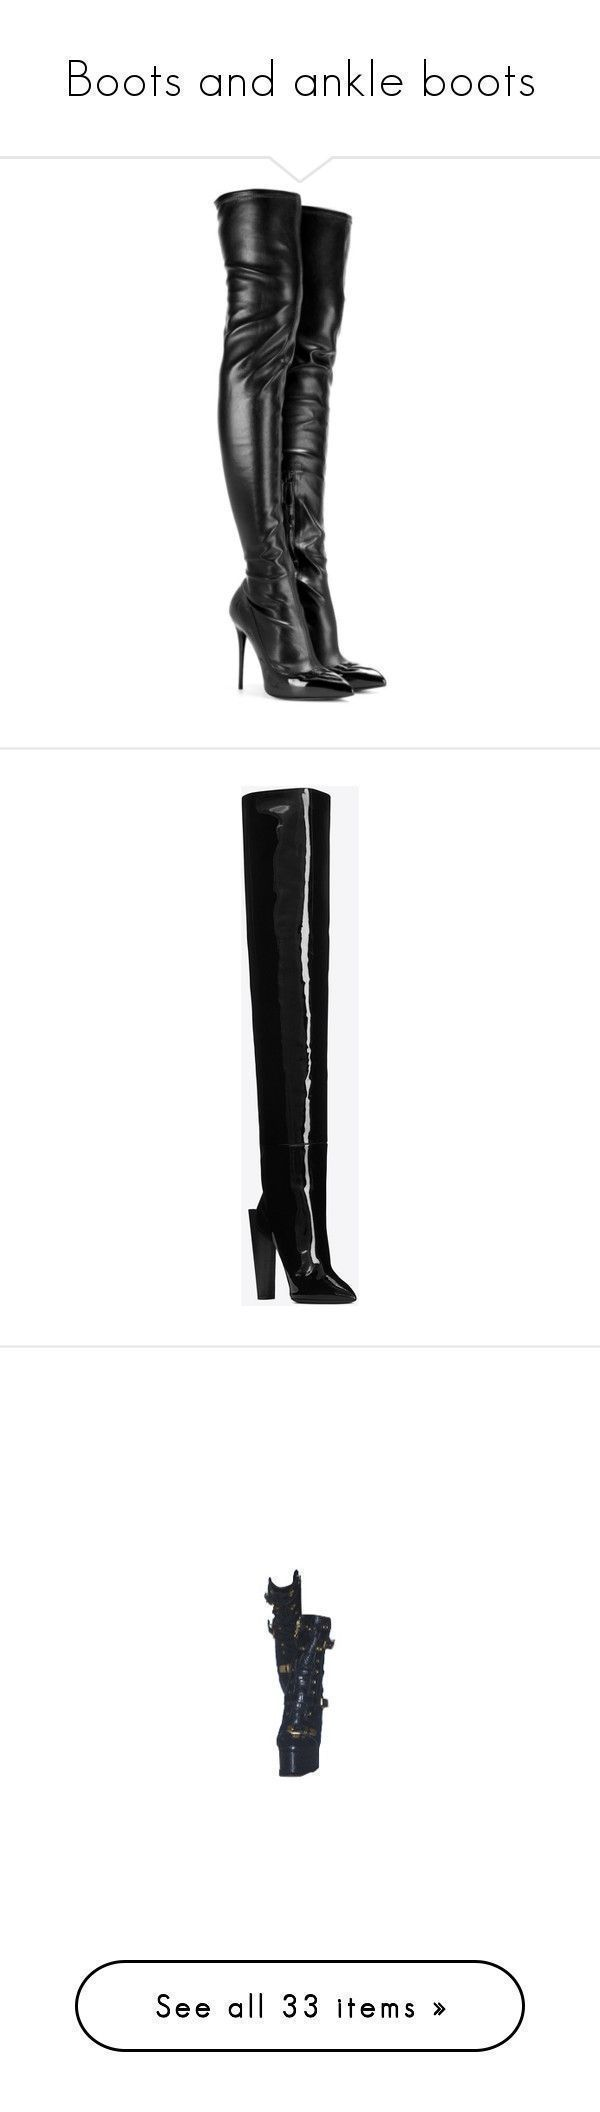 """""""Boots and ankle boots"""" by divinenk ❤ liked on Polyvore featuring shoes, boots, heels, botas, alexander mcqueen, black, patent leather boots, thigh-high boots, black heeled boots and black patent leather boots #botas #highheelbootsankle #ankleboots #highheelbootsthigh"""